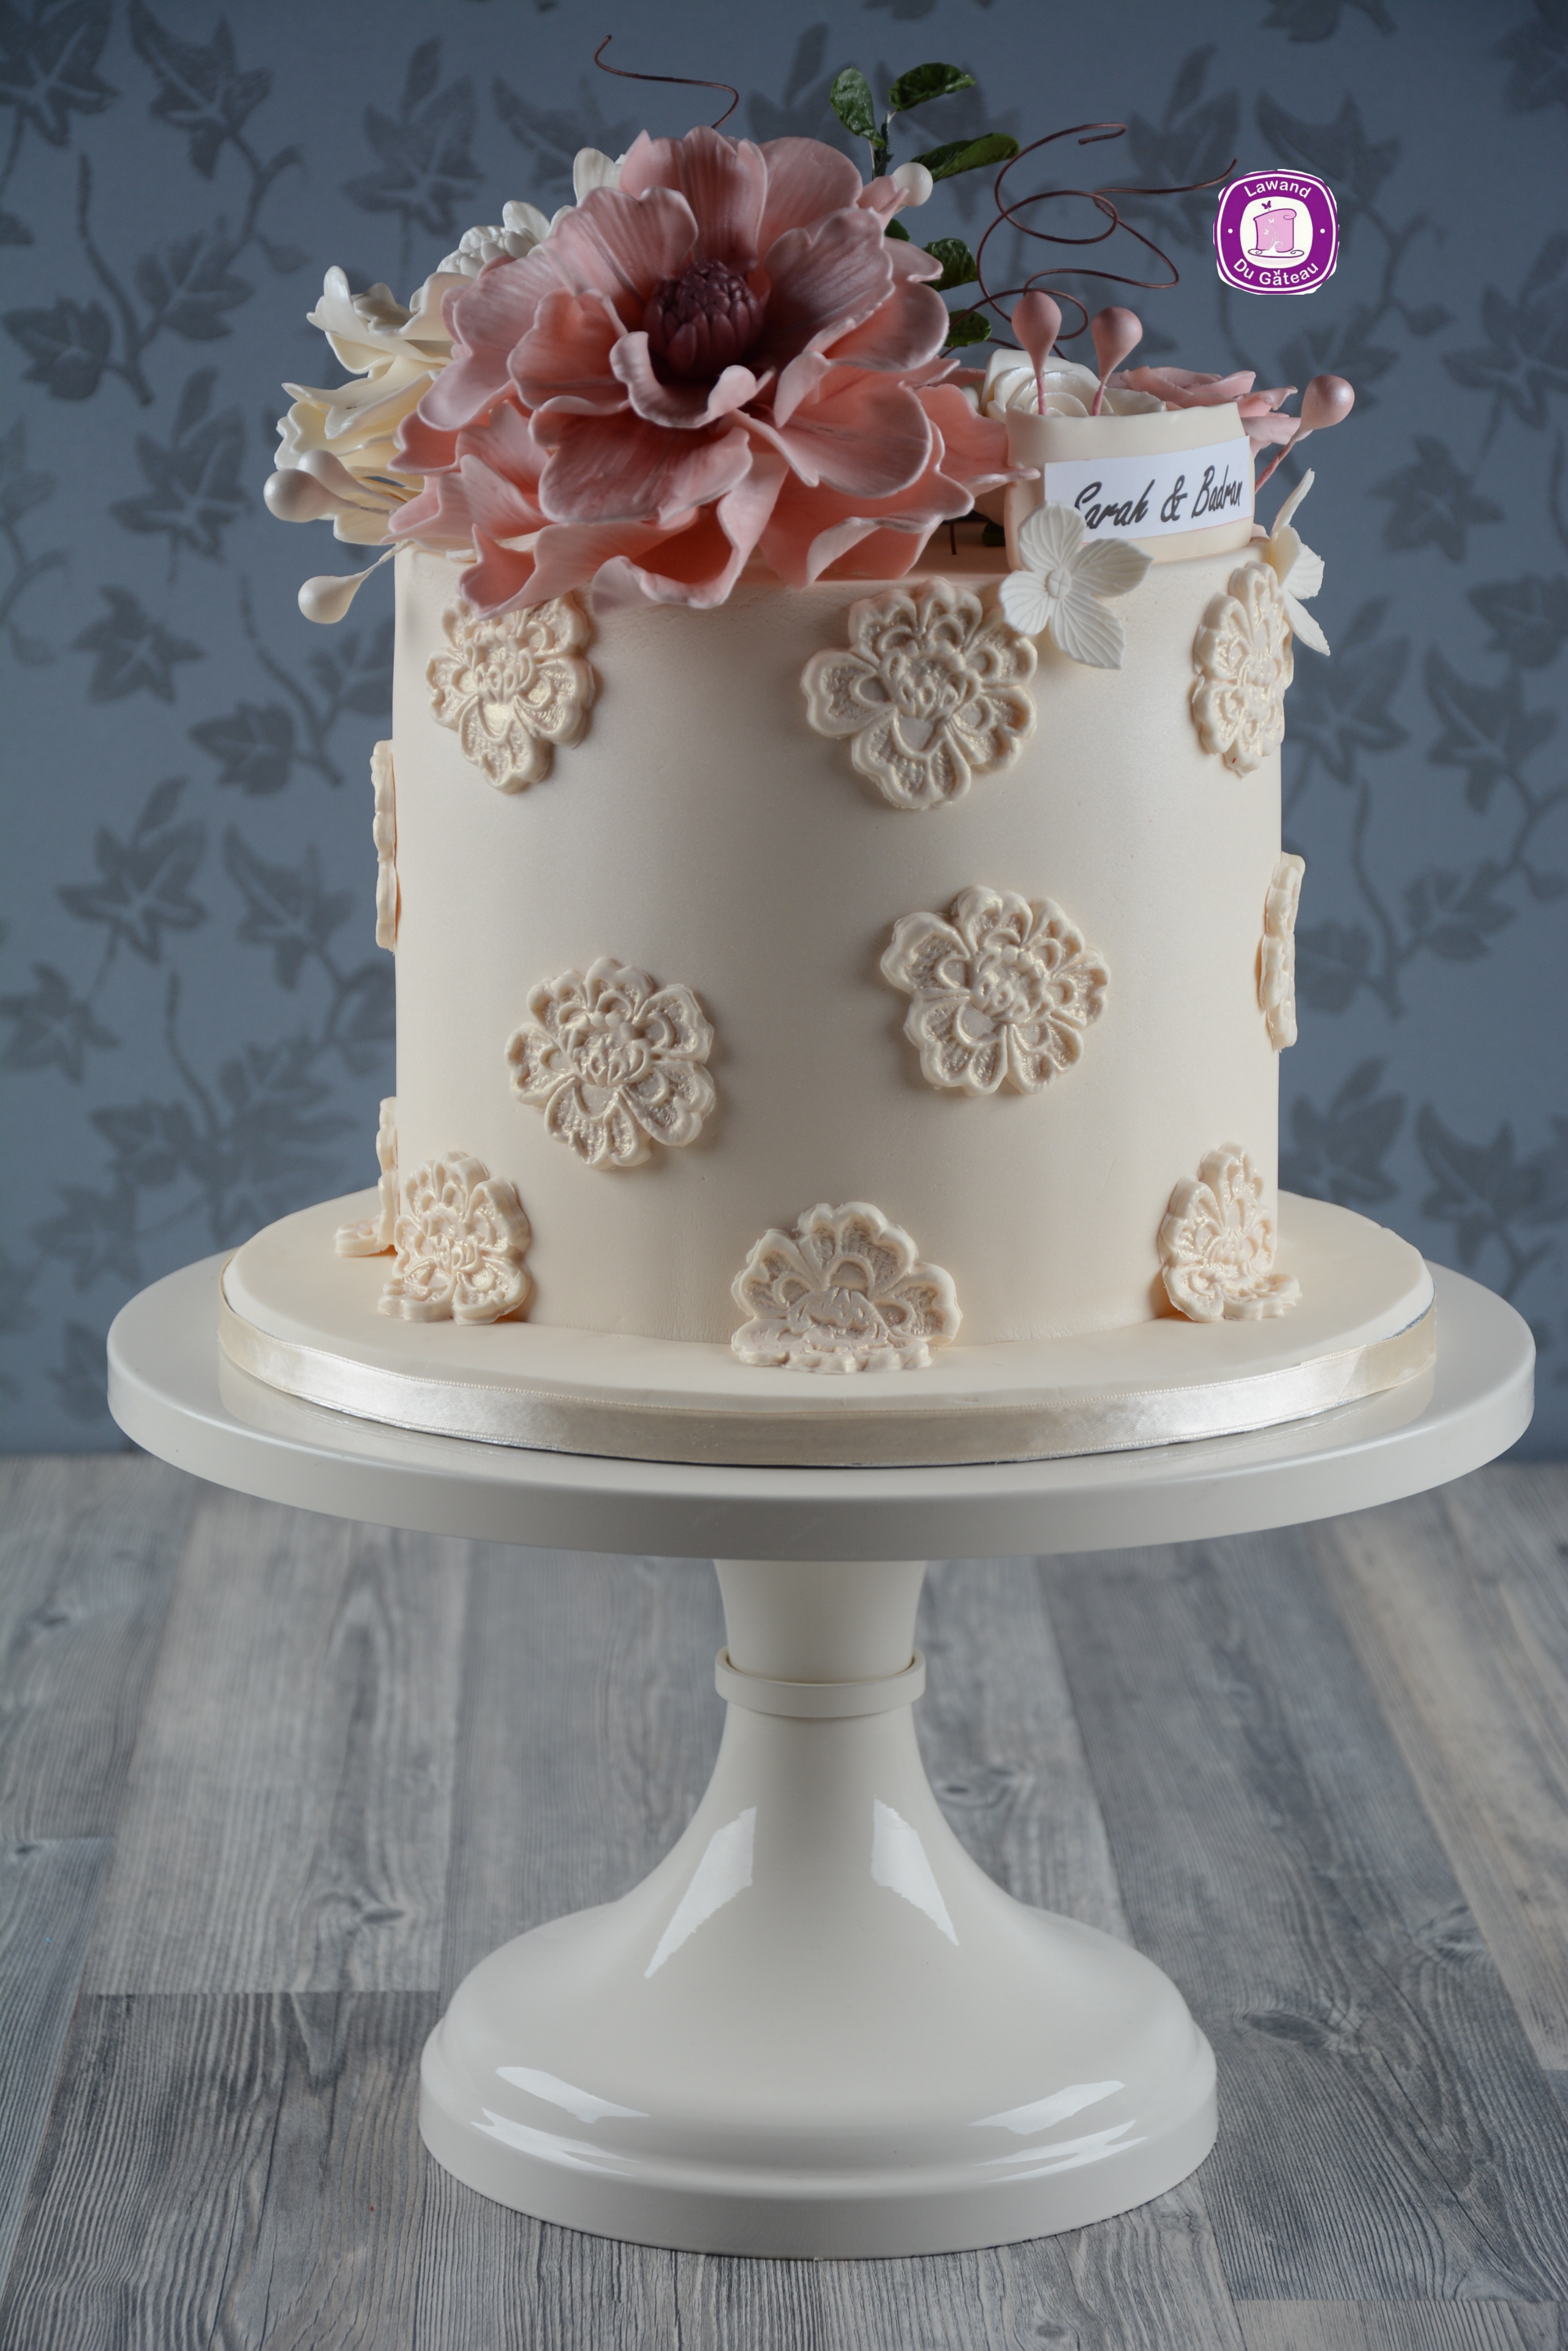 White and light pink wedding cake